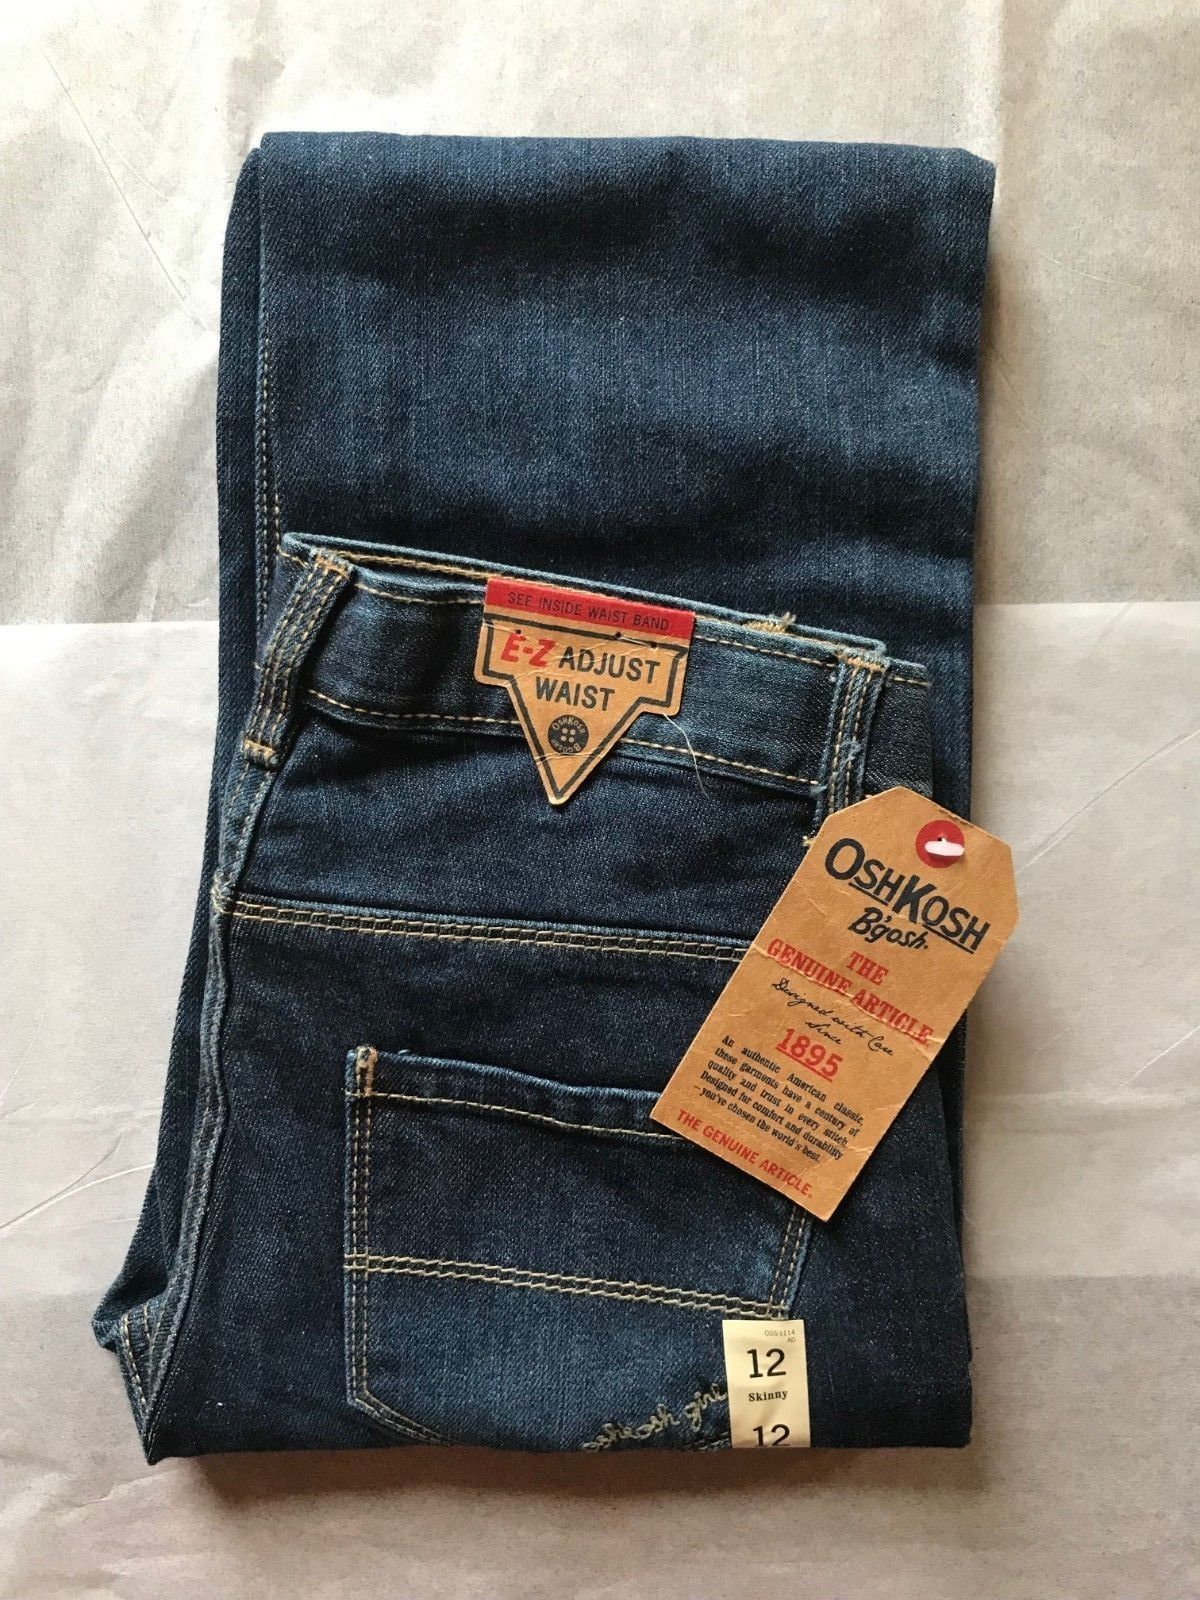 Primary image for Osh Kosh Girl's Skinny Blue Jeans Size 12